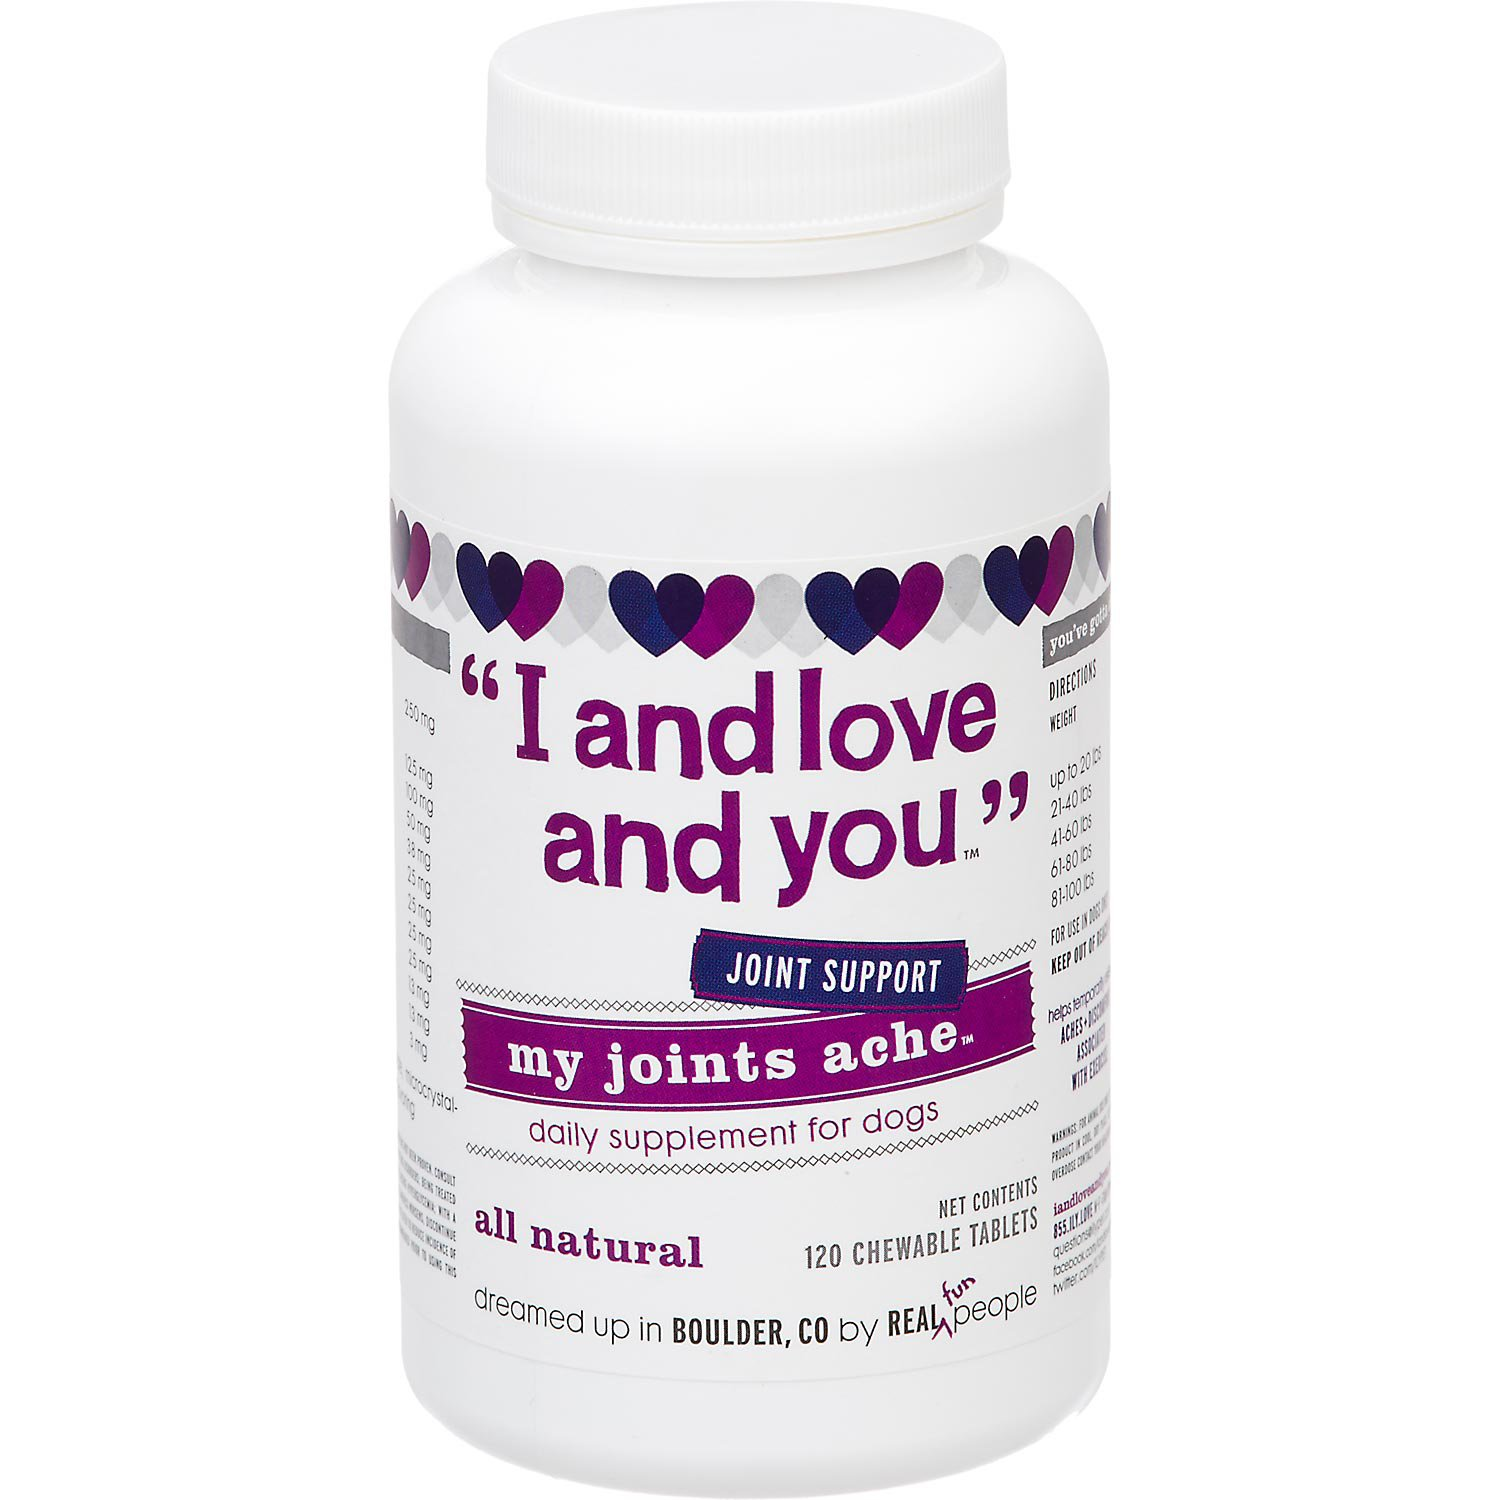 I and Love and You My Joints Ache Dog Supplement